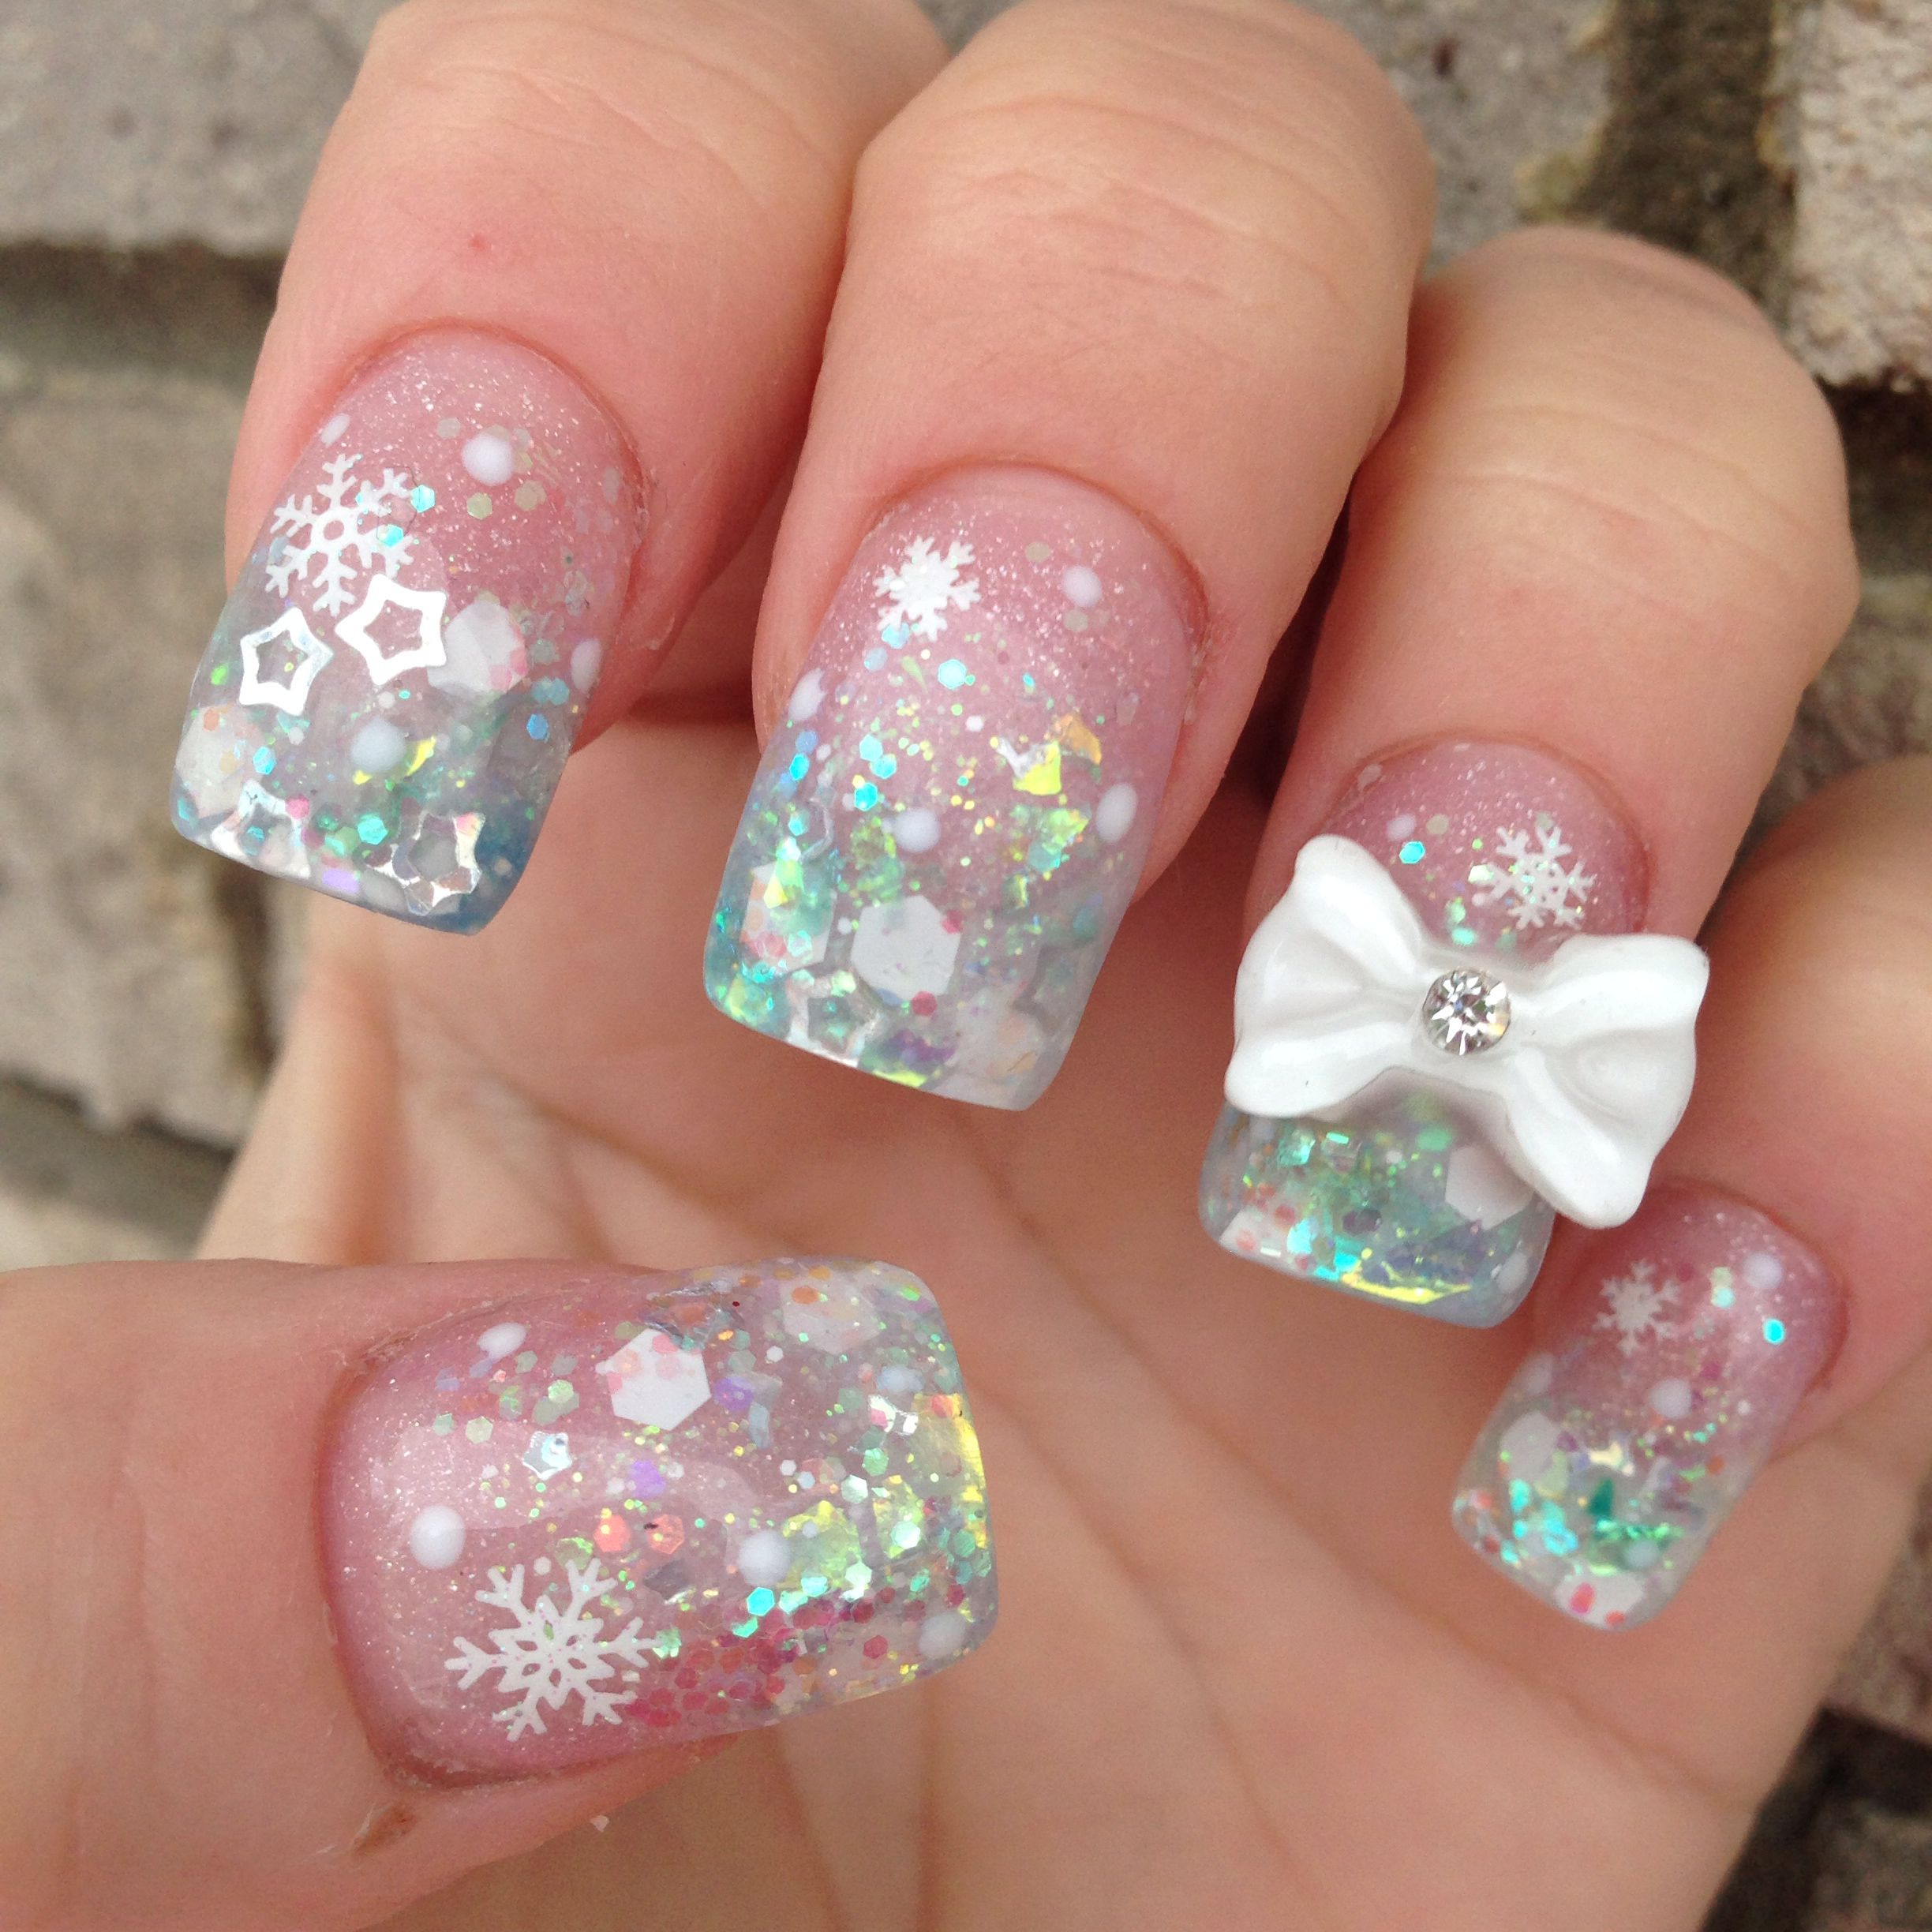 Christmas Designs For Acrylic Nails: Nail Designs, Glamorous Nails, Love Nails